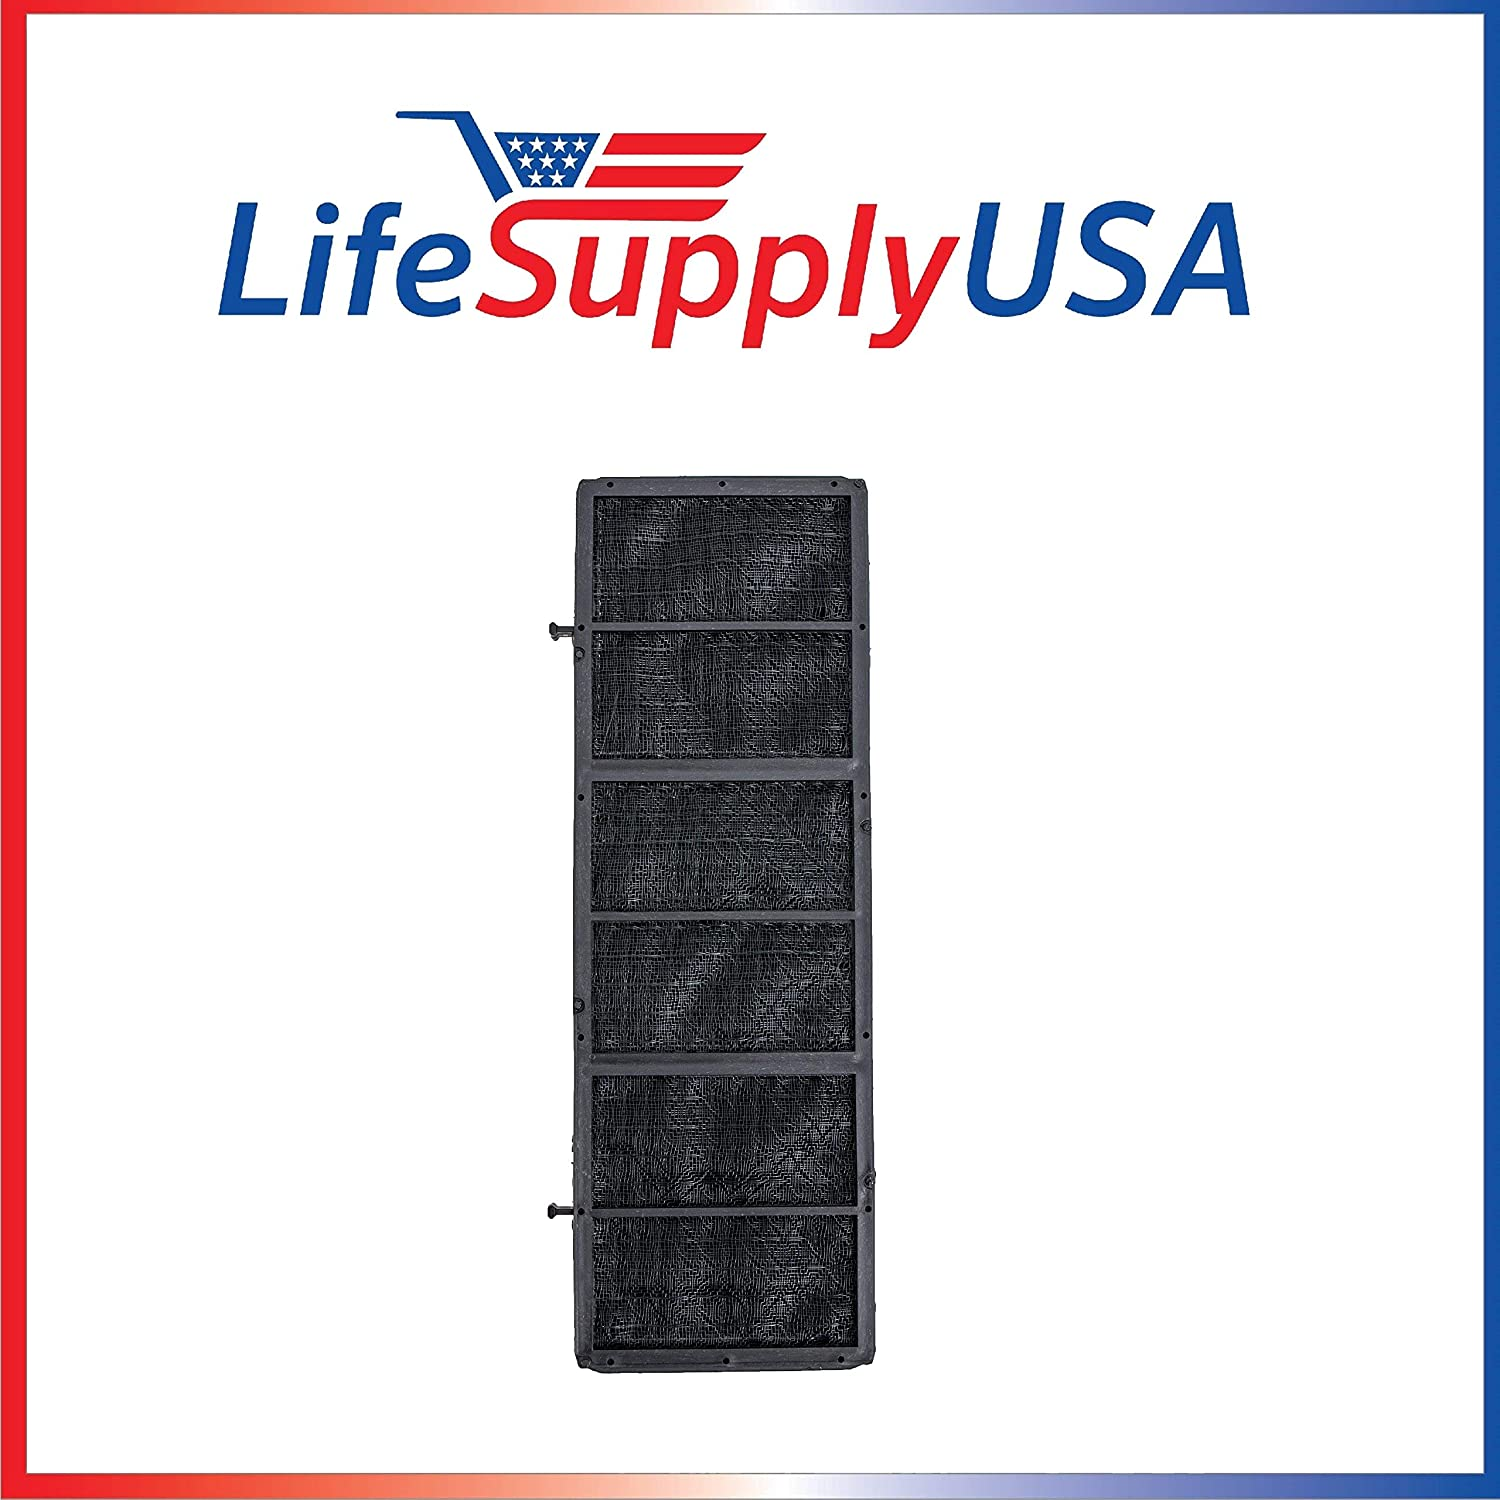 5パック交換用フィルタOreck XL Tabletop Professional Pro Air Purifiers ap1pkp Airb Airp and AIRPS by lifesupplyusa B07B4G4GHS